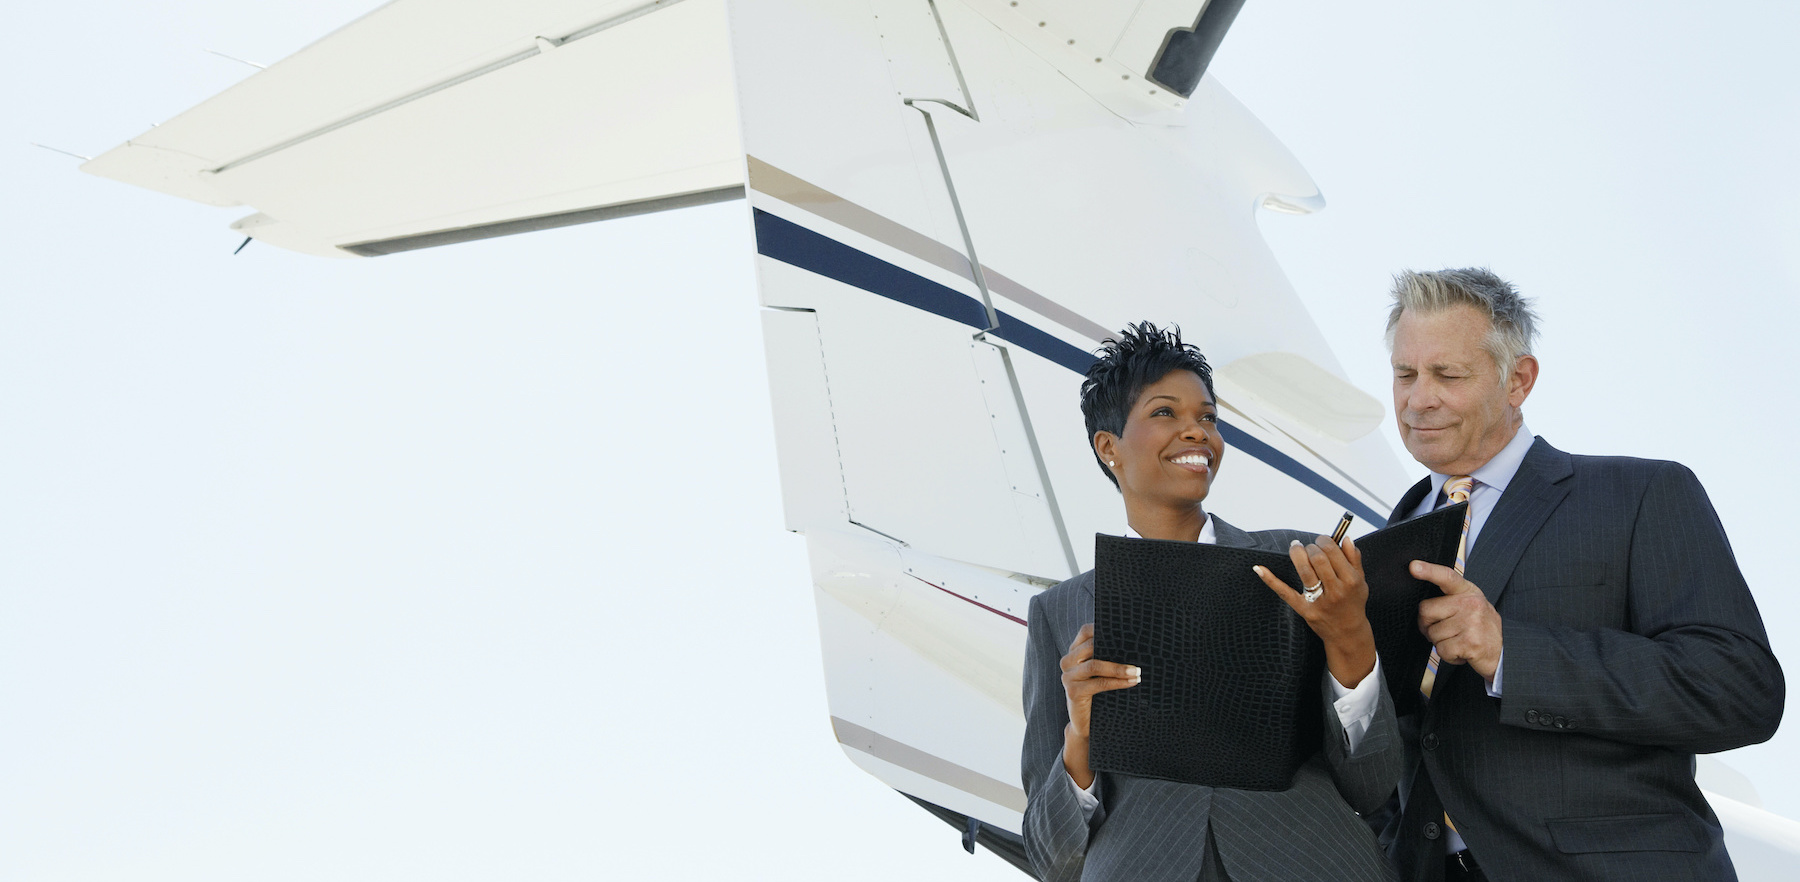 Jet Agency Terms and Conditions